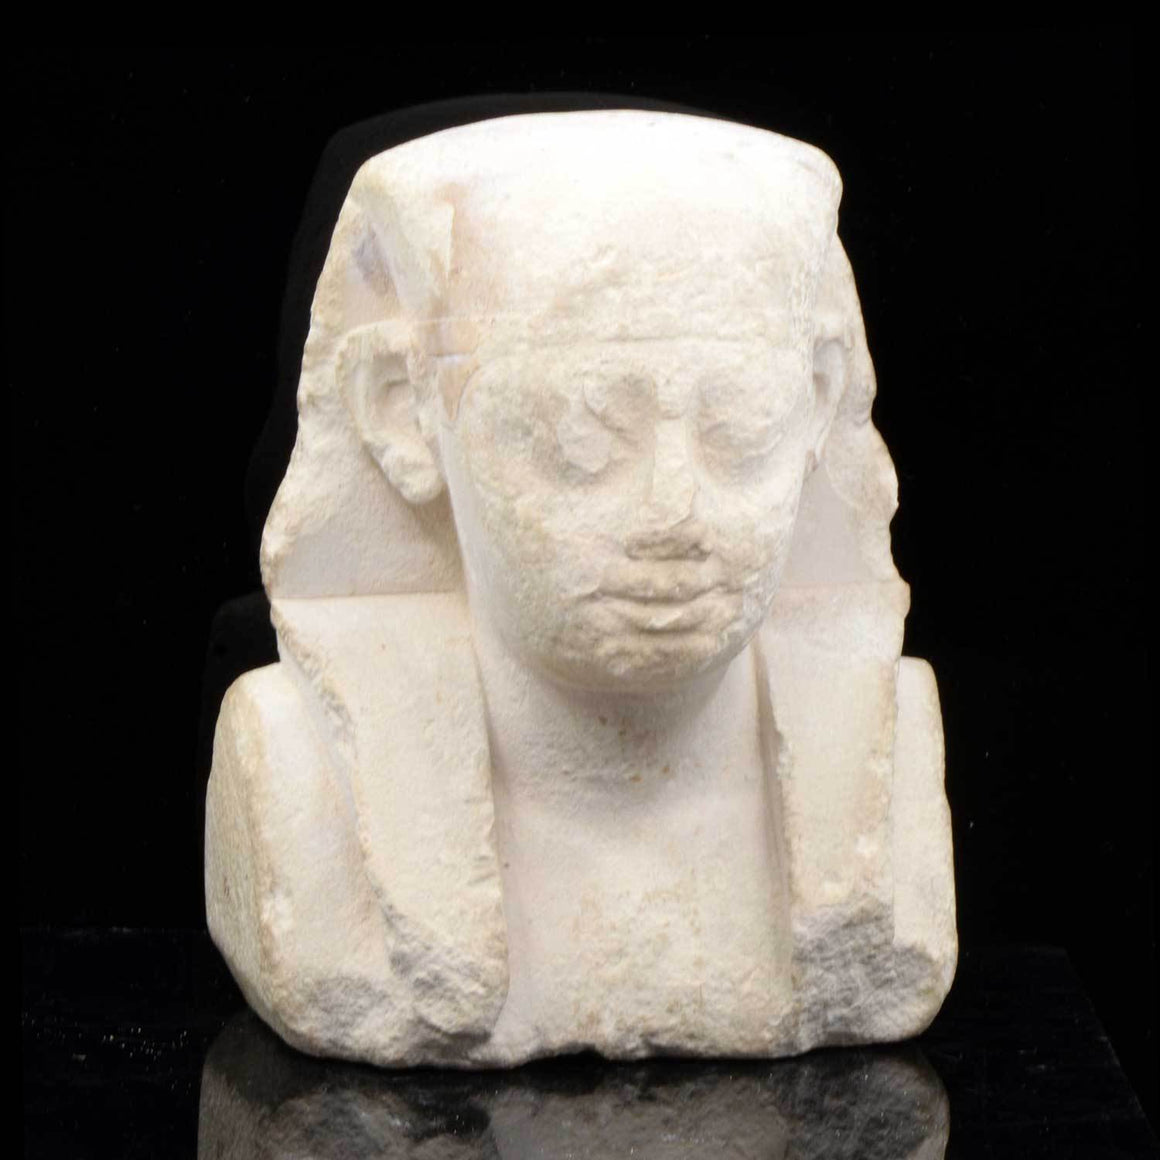 * An Egyptian Limestone Sculptor's Model of a Pharaoh, Ptolemaic Period, ca. 332 - 30 BCE - Sands of Time Ancient Art